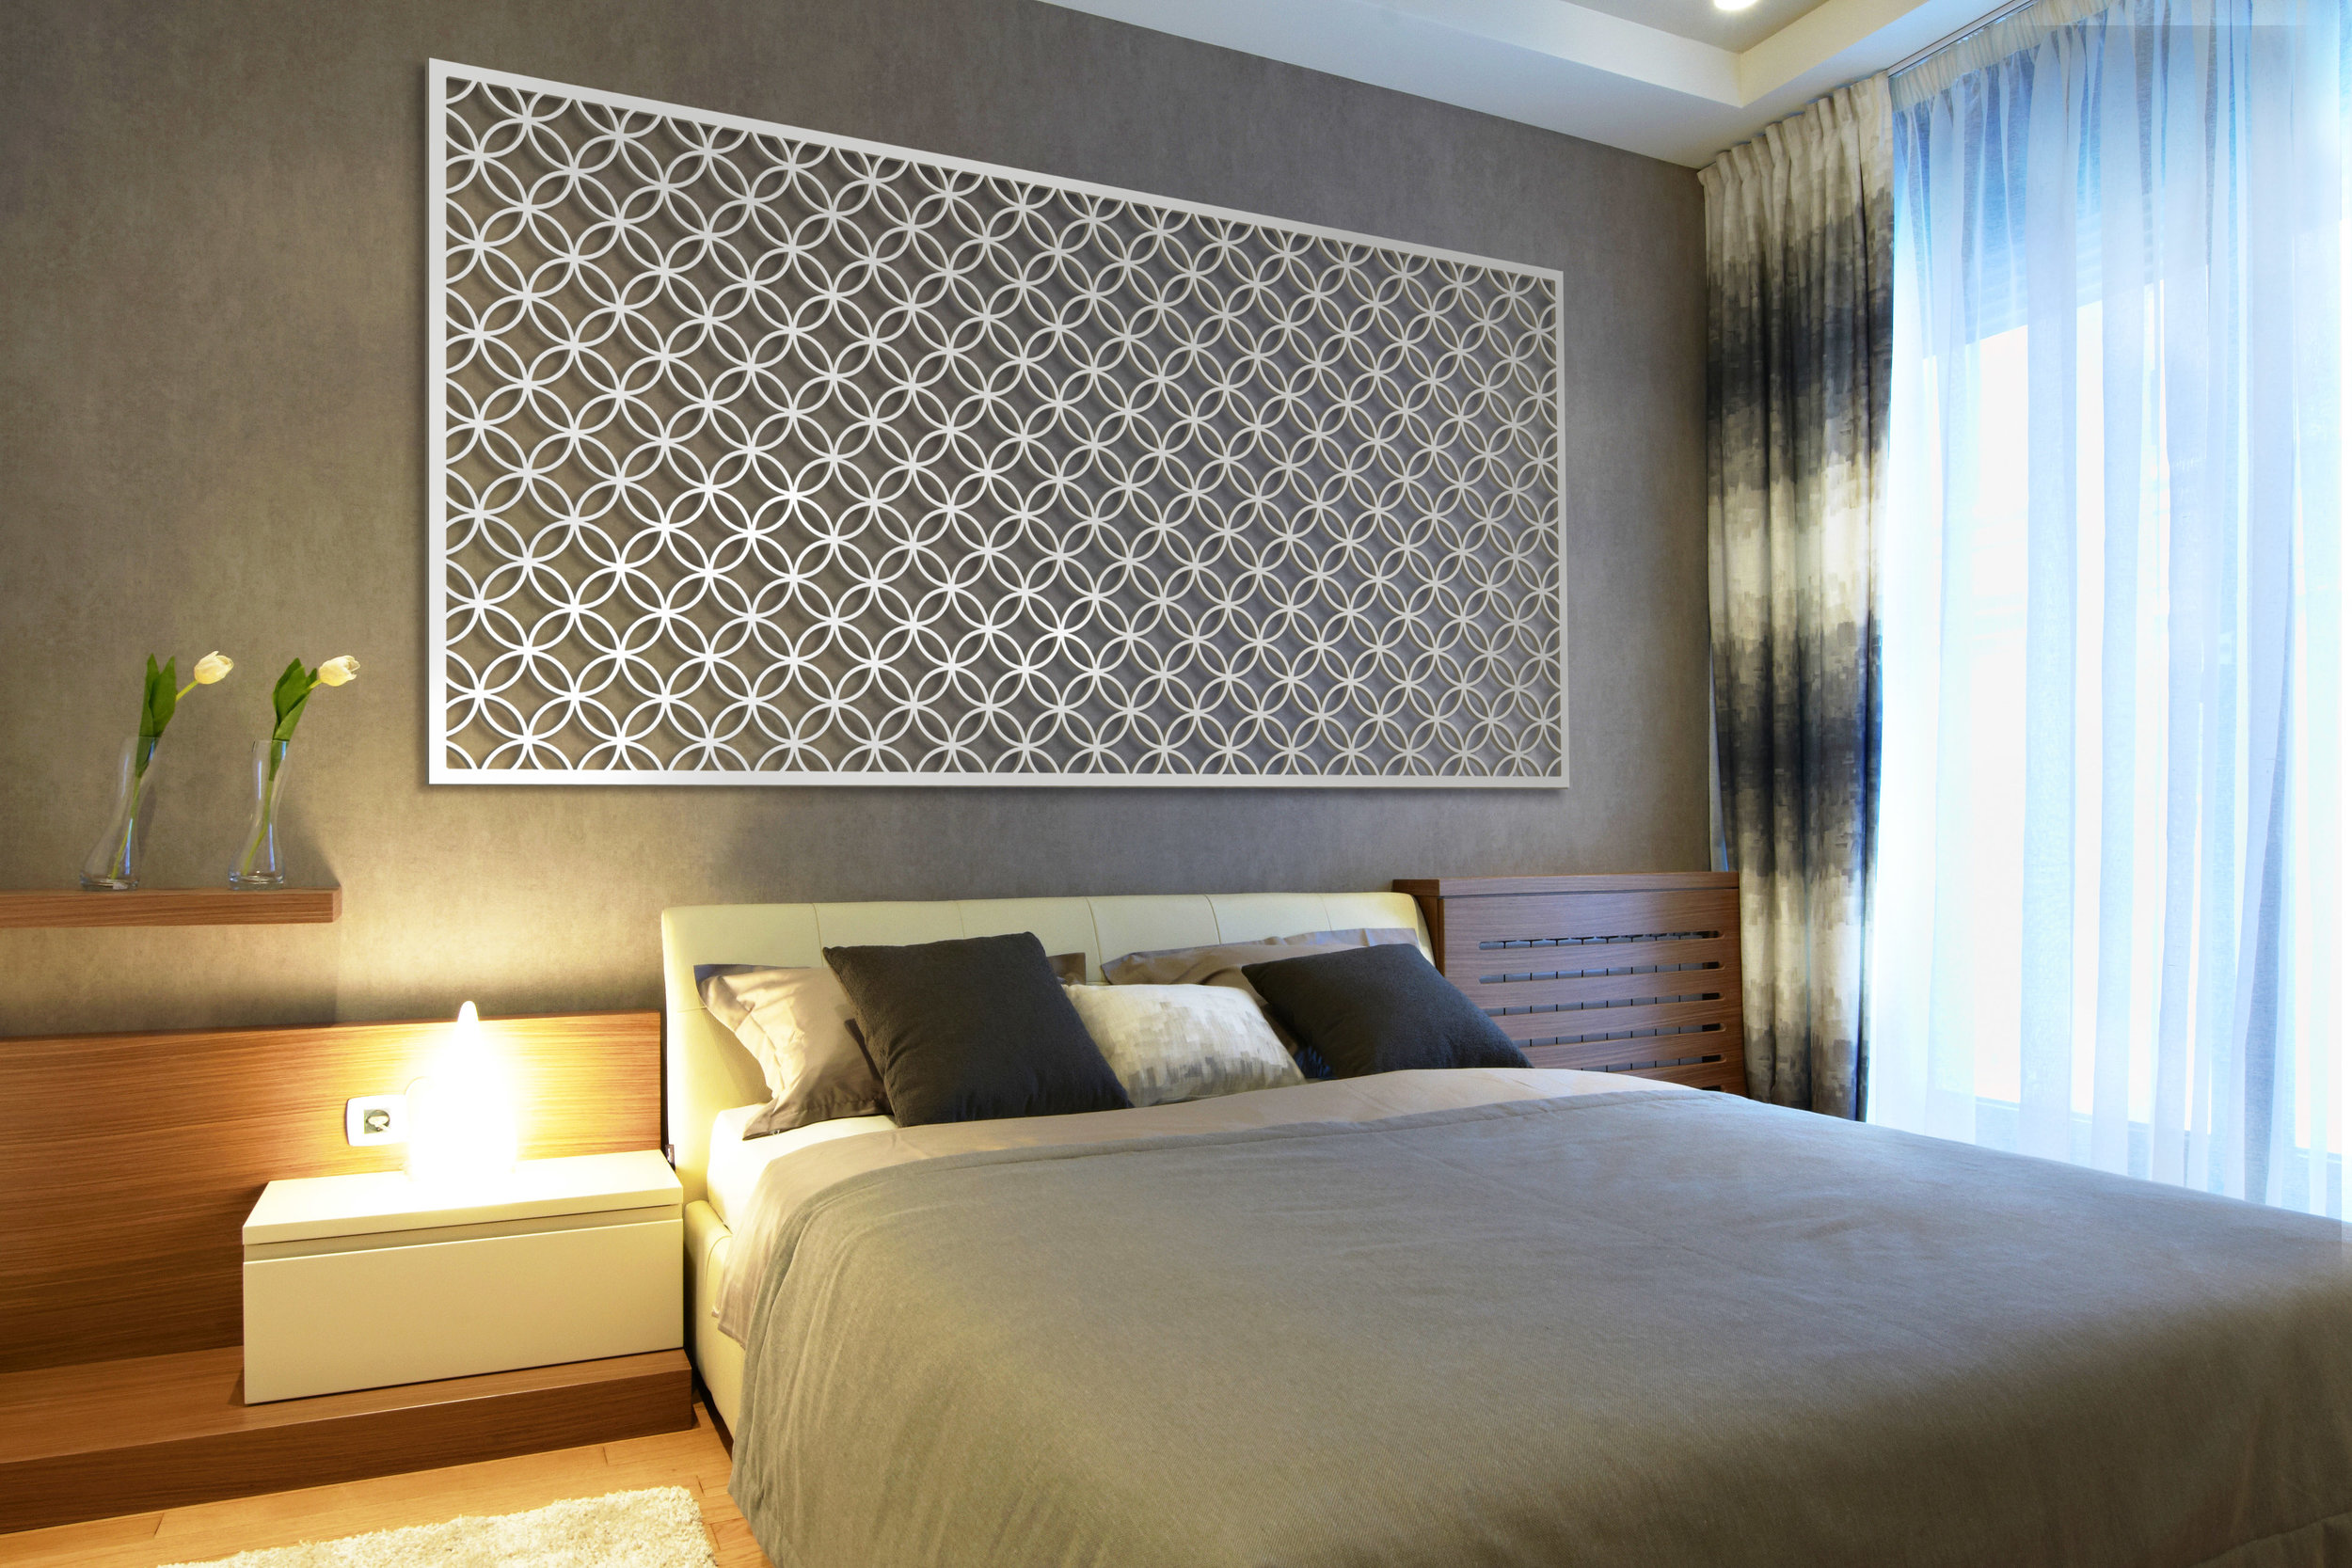 Installation Rendering C   Japanese Circles Thin decorative hotel wall panel - painted